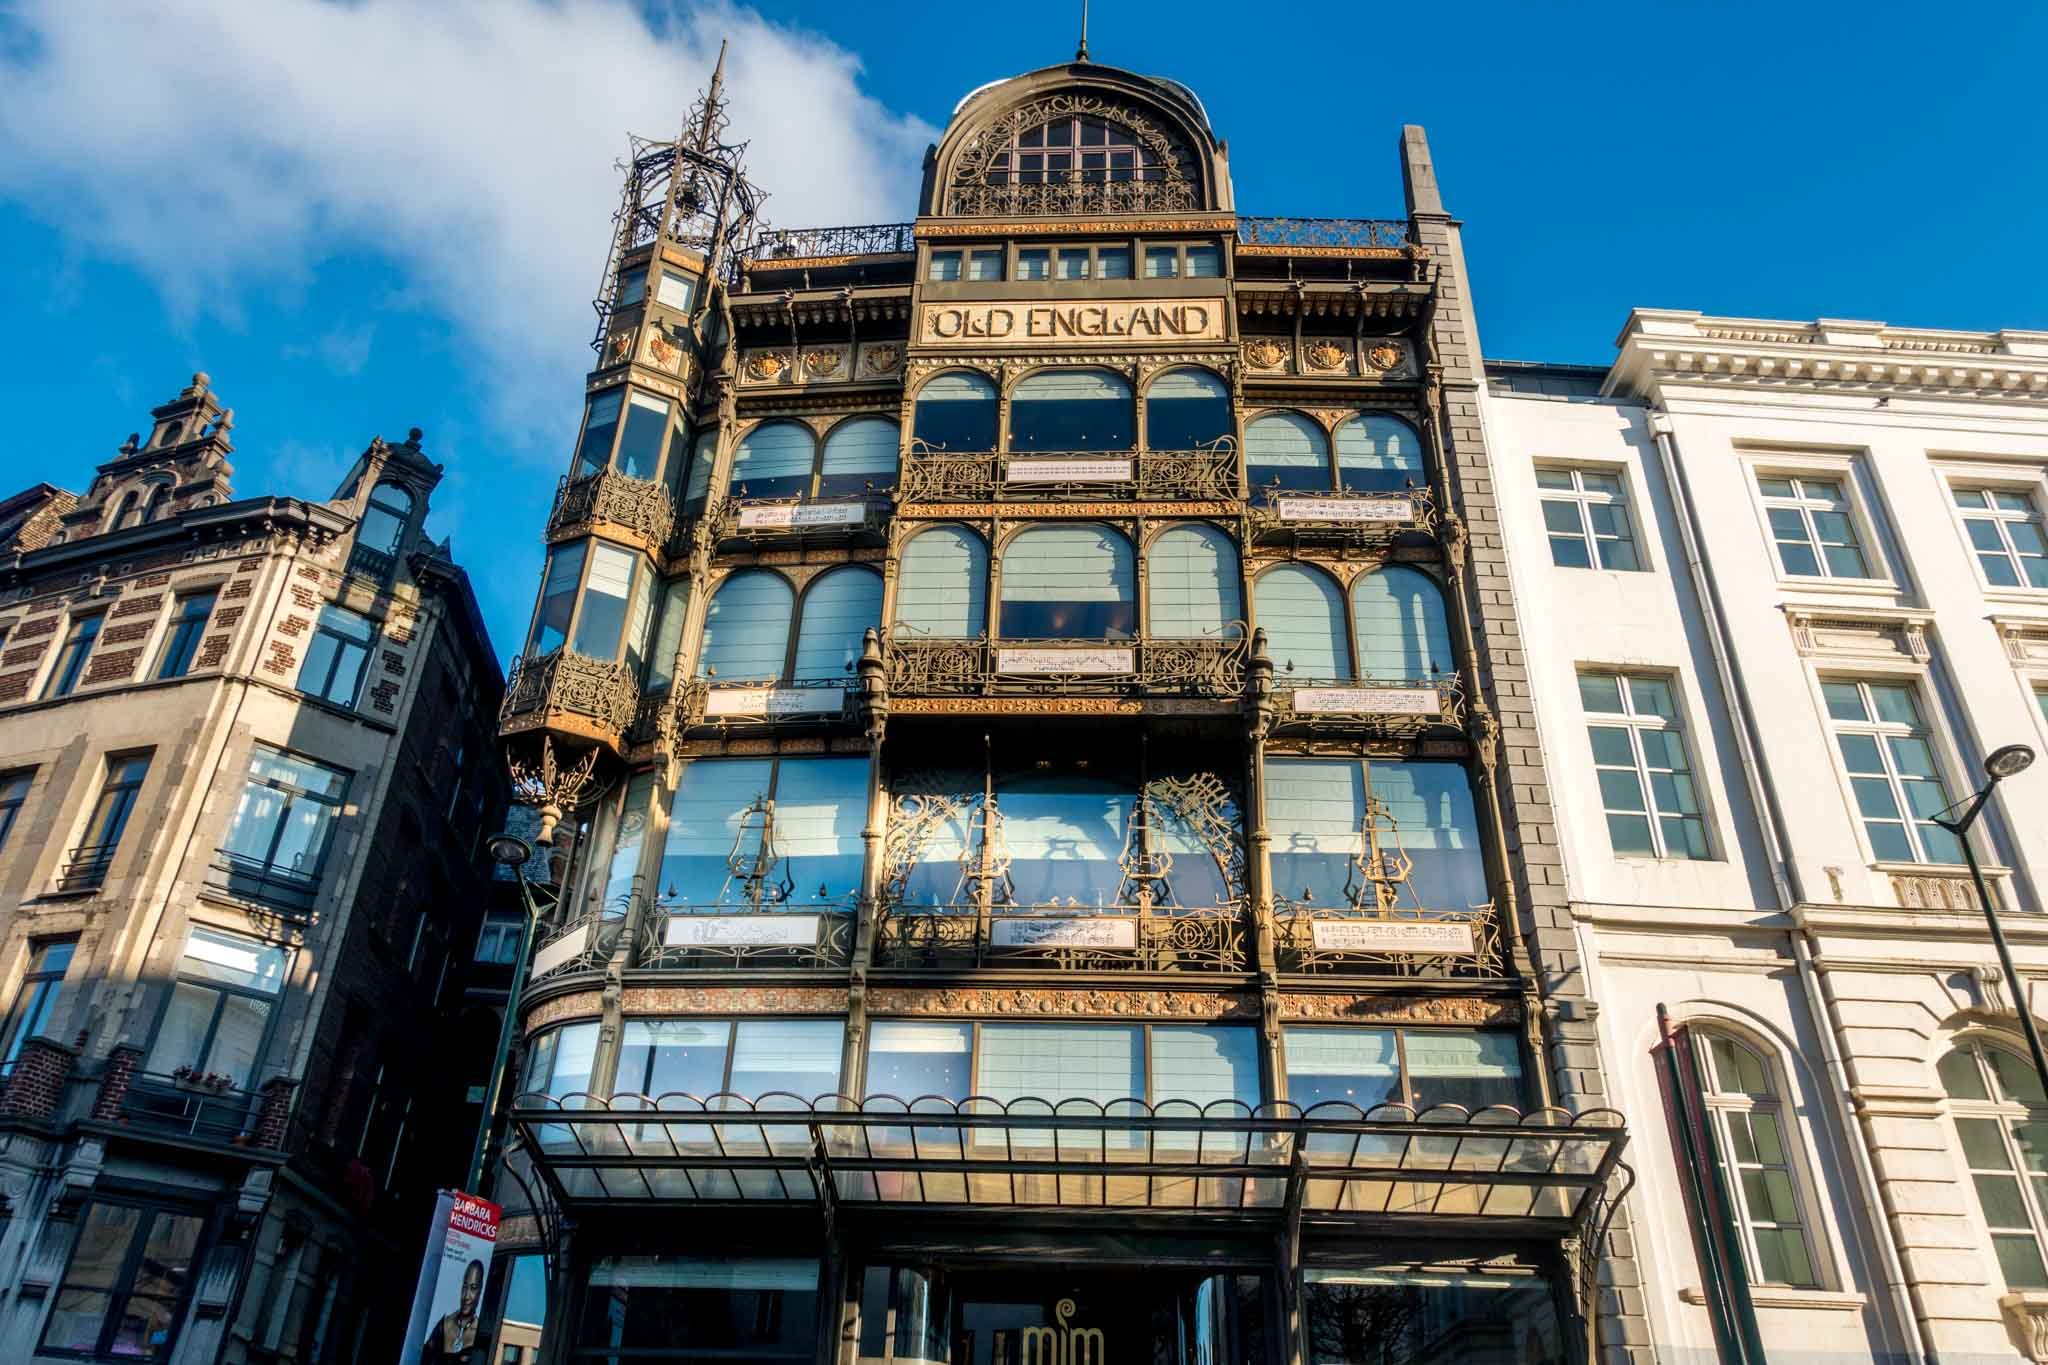 """Building with intricate wrought iron around the windows and """"Old England"""" sign"""